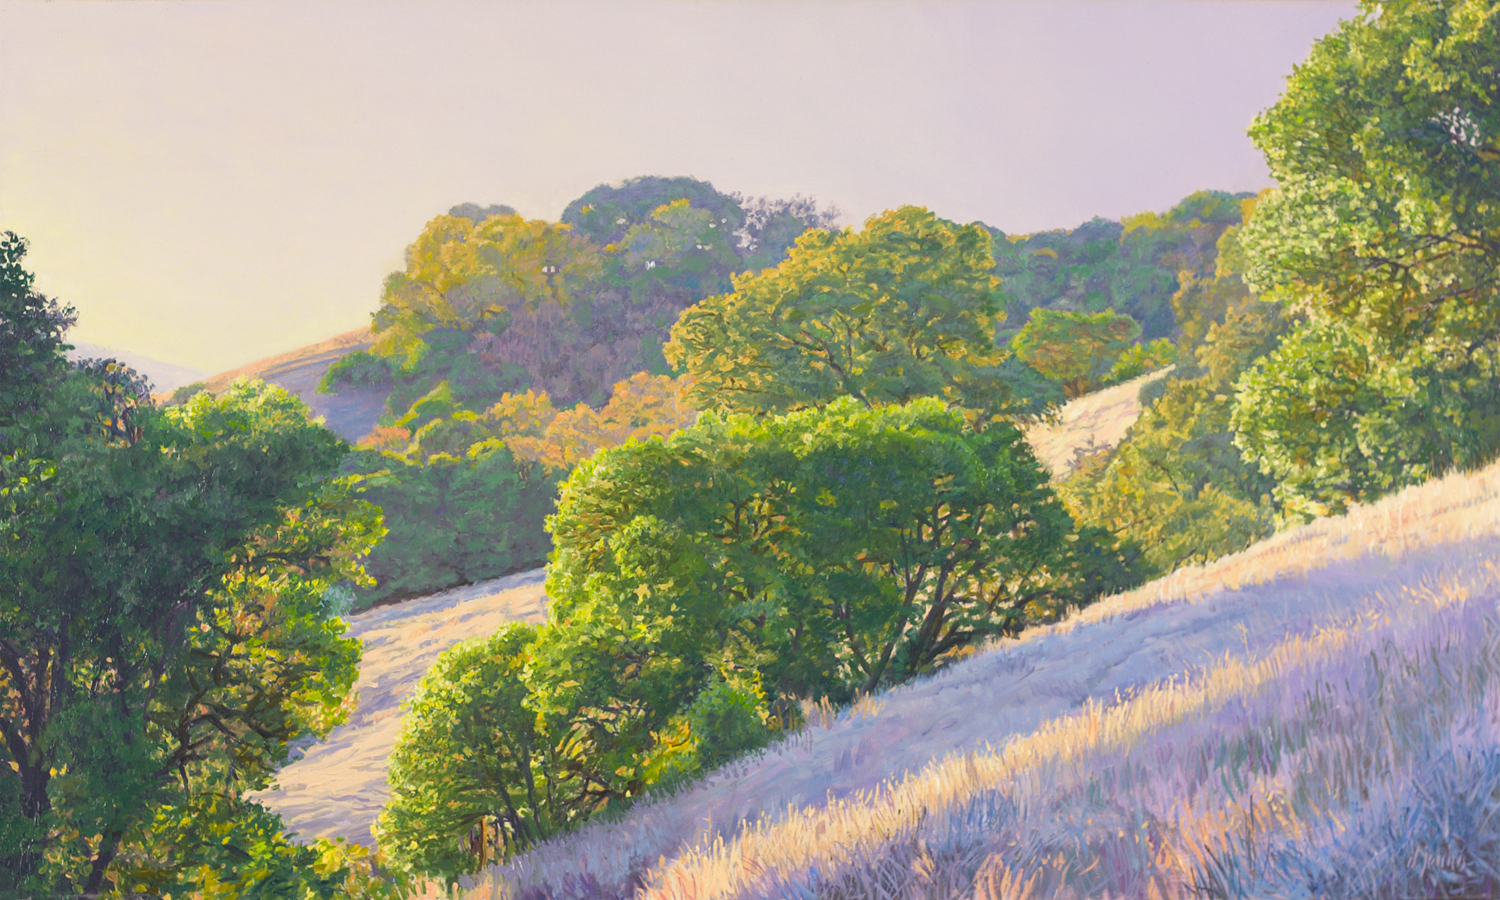 Evening in the Hills